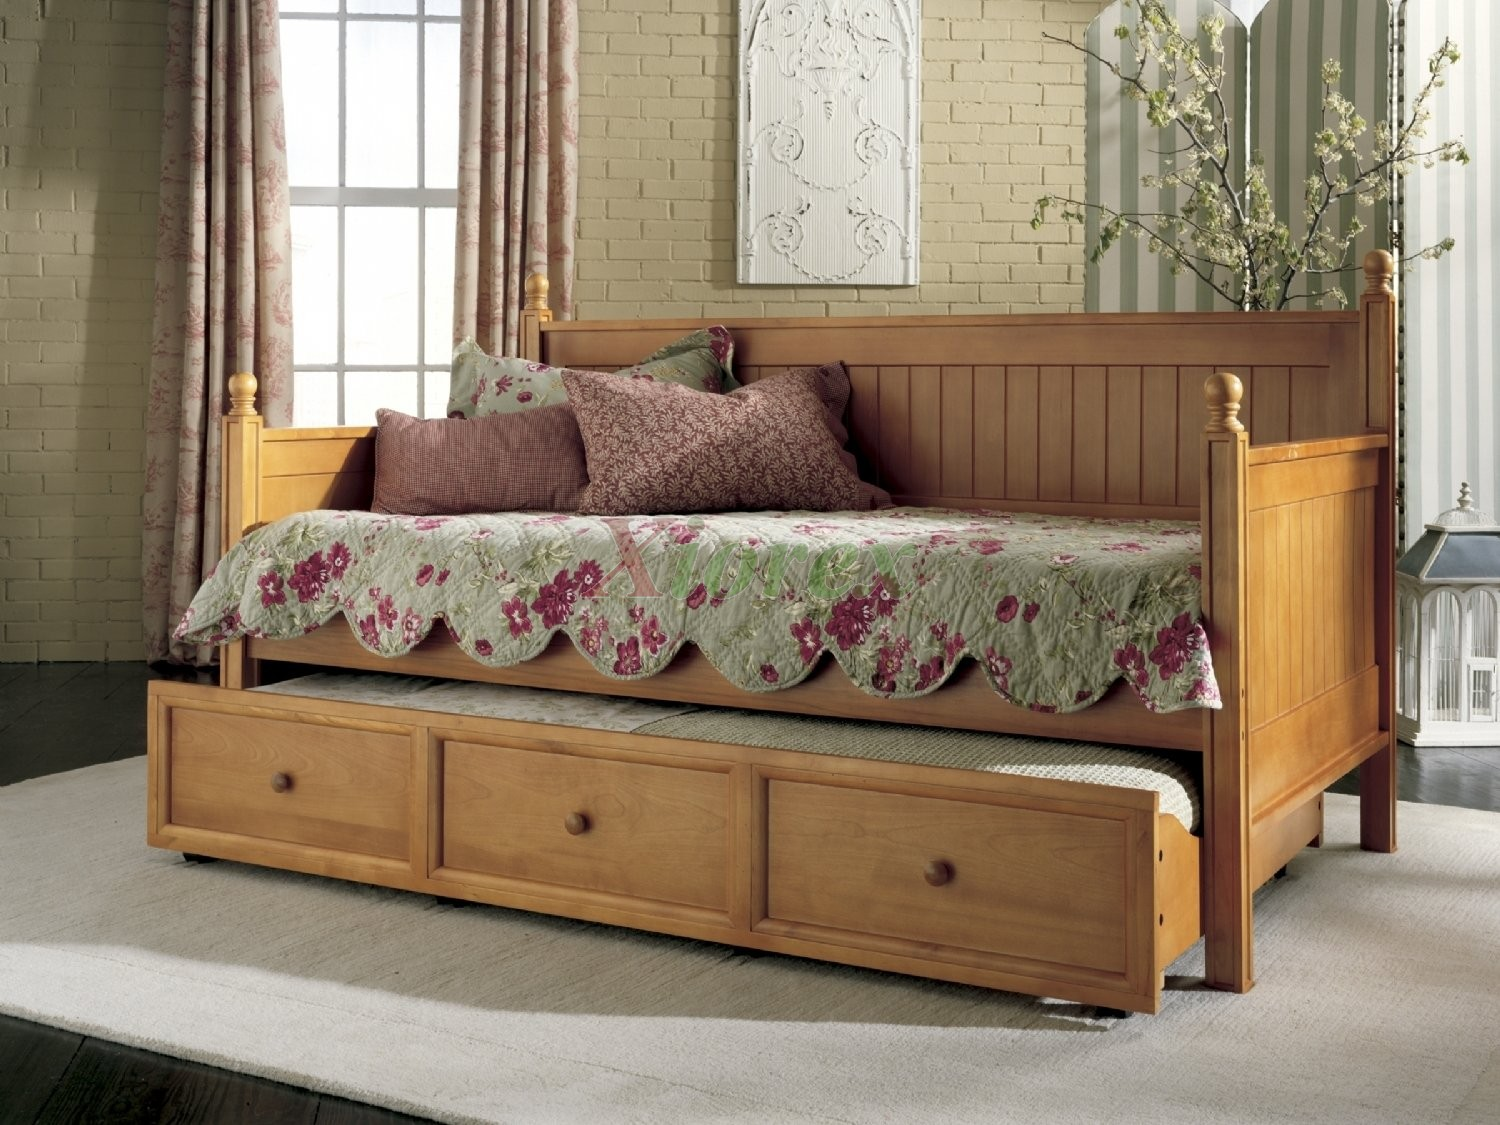 Casey Daybed -Twin Size Daybed w Guest Trundle in Honey Maple | Xiorex. - Casey Daybed - Twin Size Bed W Trundle In Honey Maple & White - Xiorex